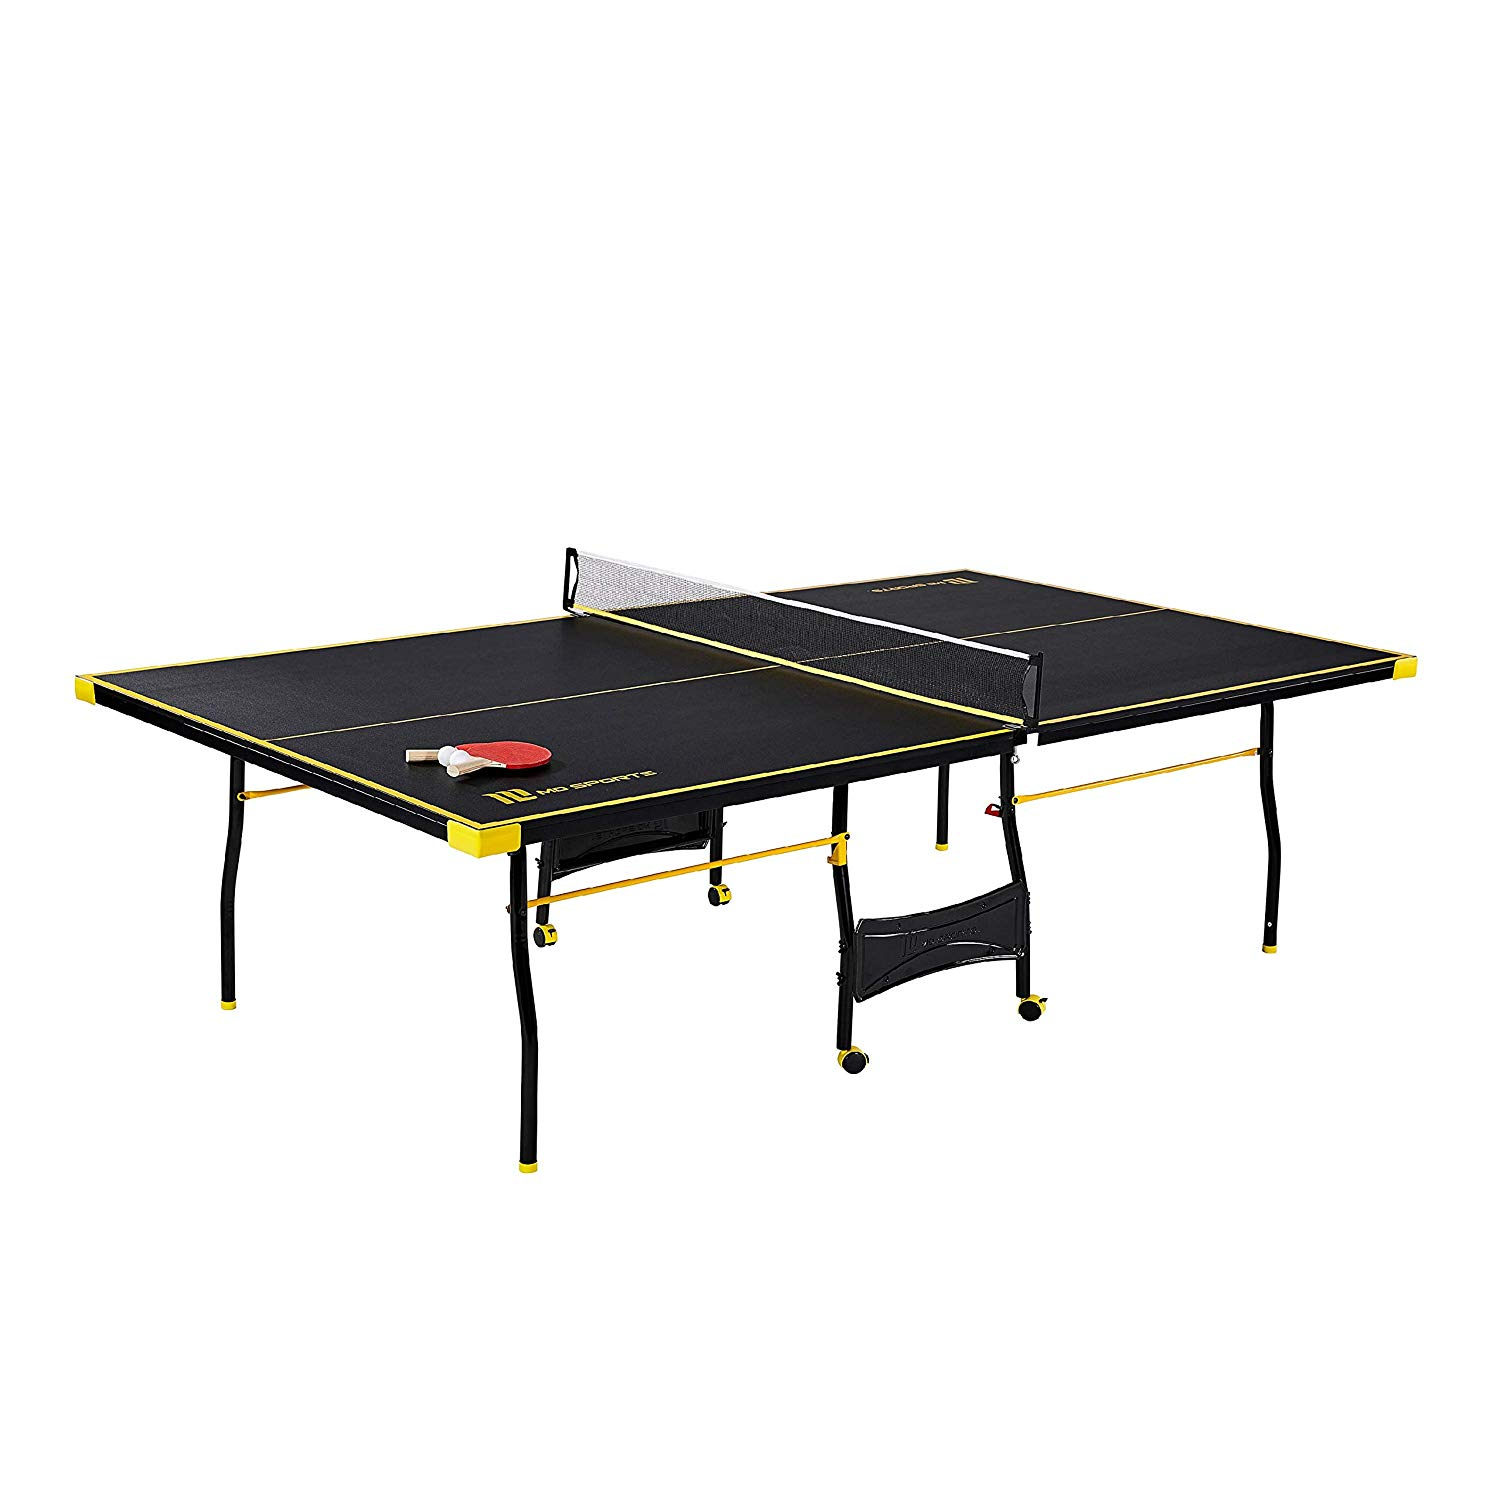 MD Sports Regulation Table Tennis Table